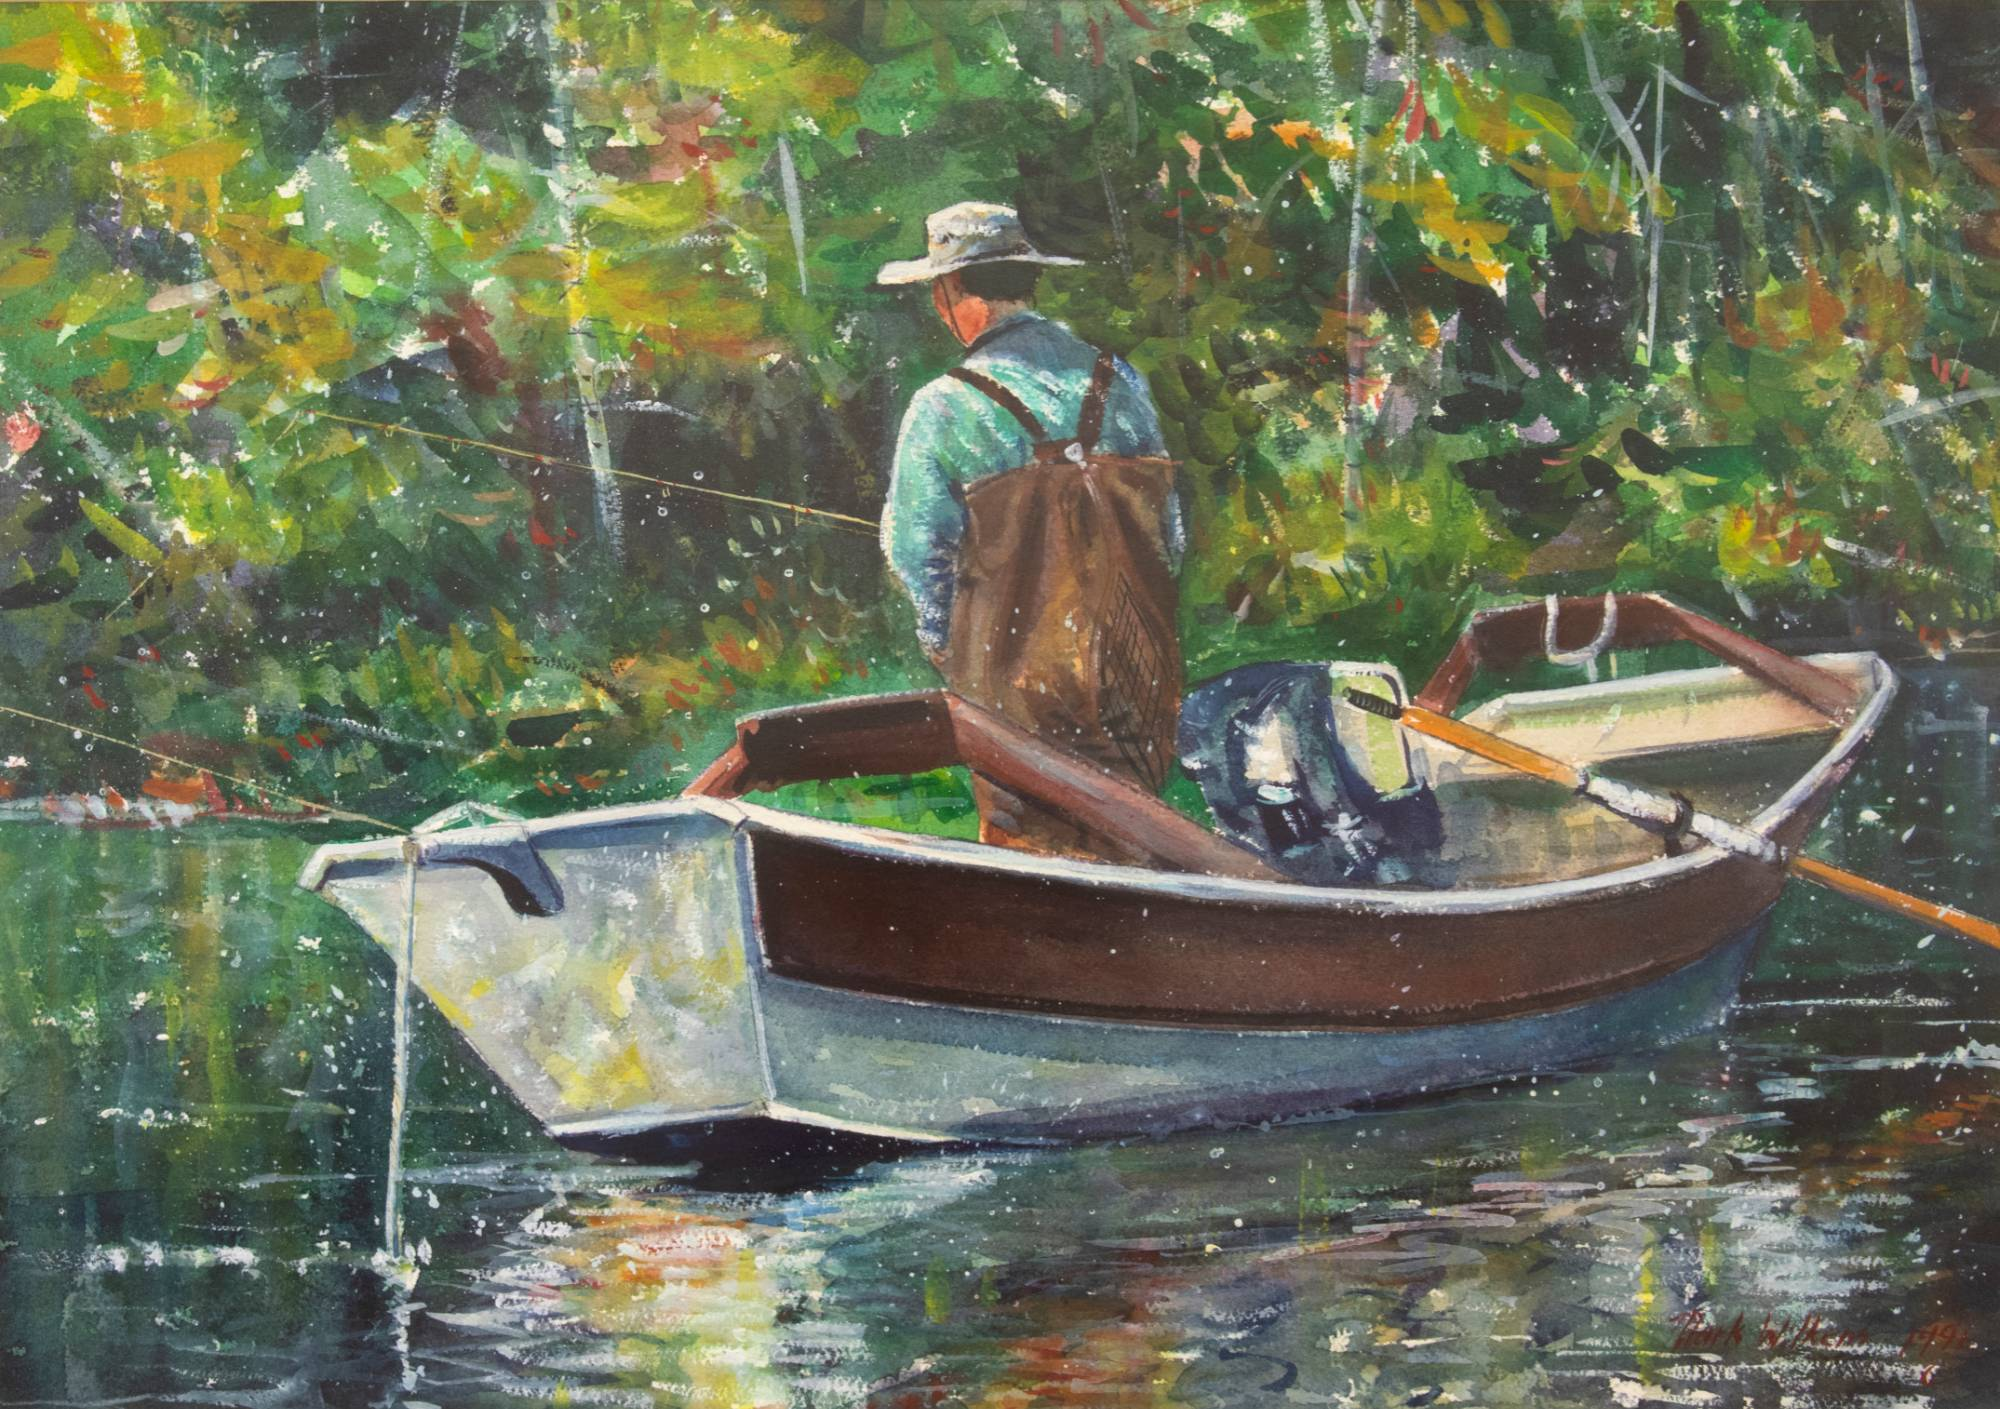 A man in a boat fishing with green foliage in the background.